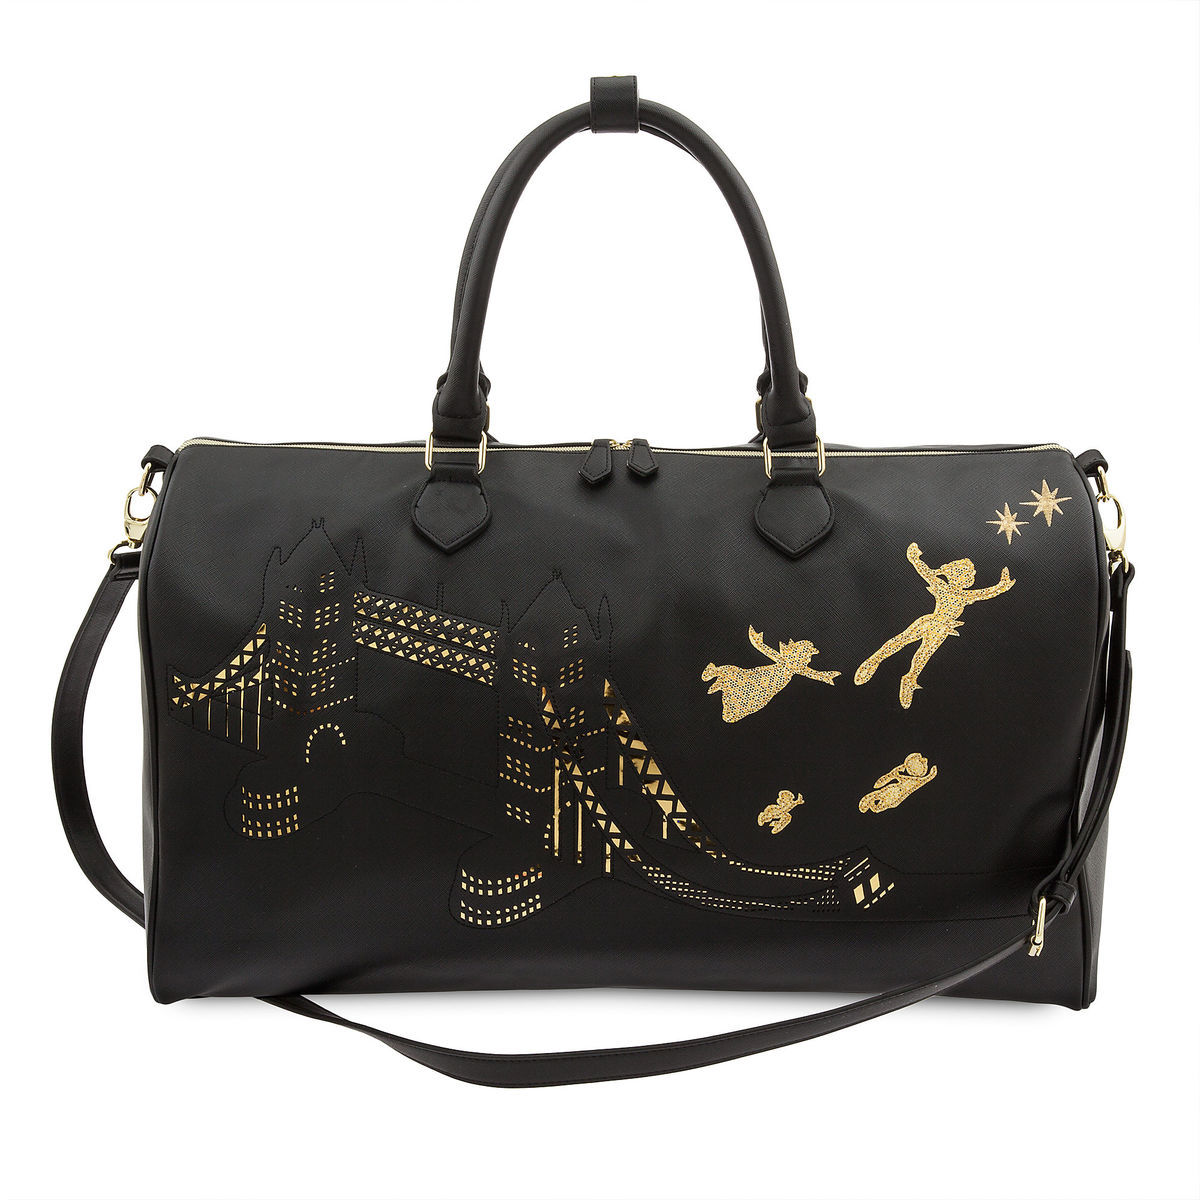 Product Image Of Peter Pan Travel Bag By Danielle Nicole 1